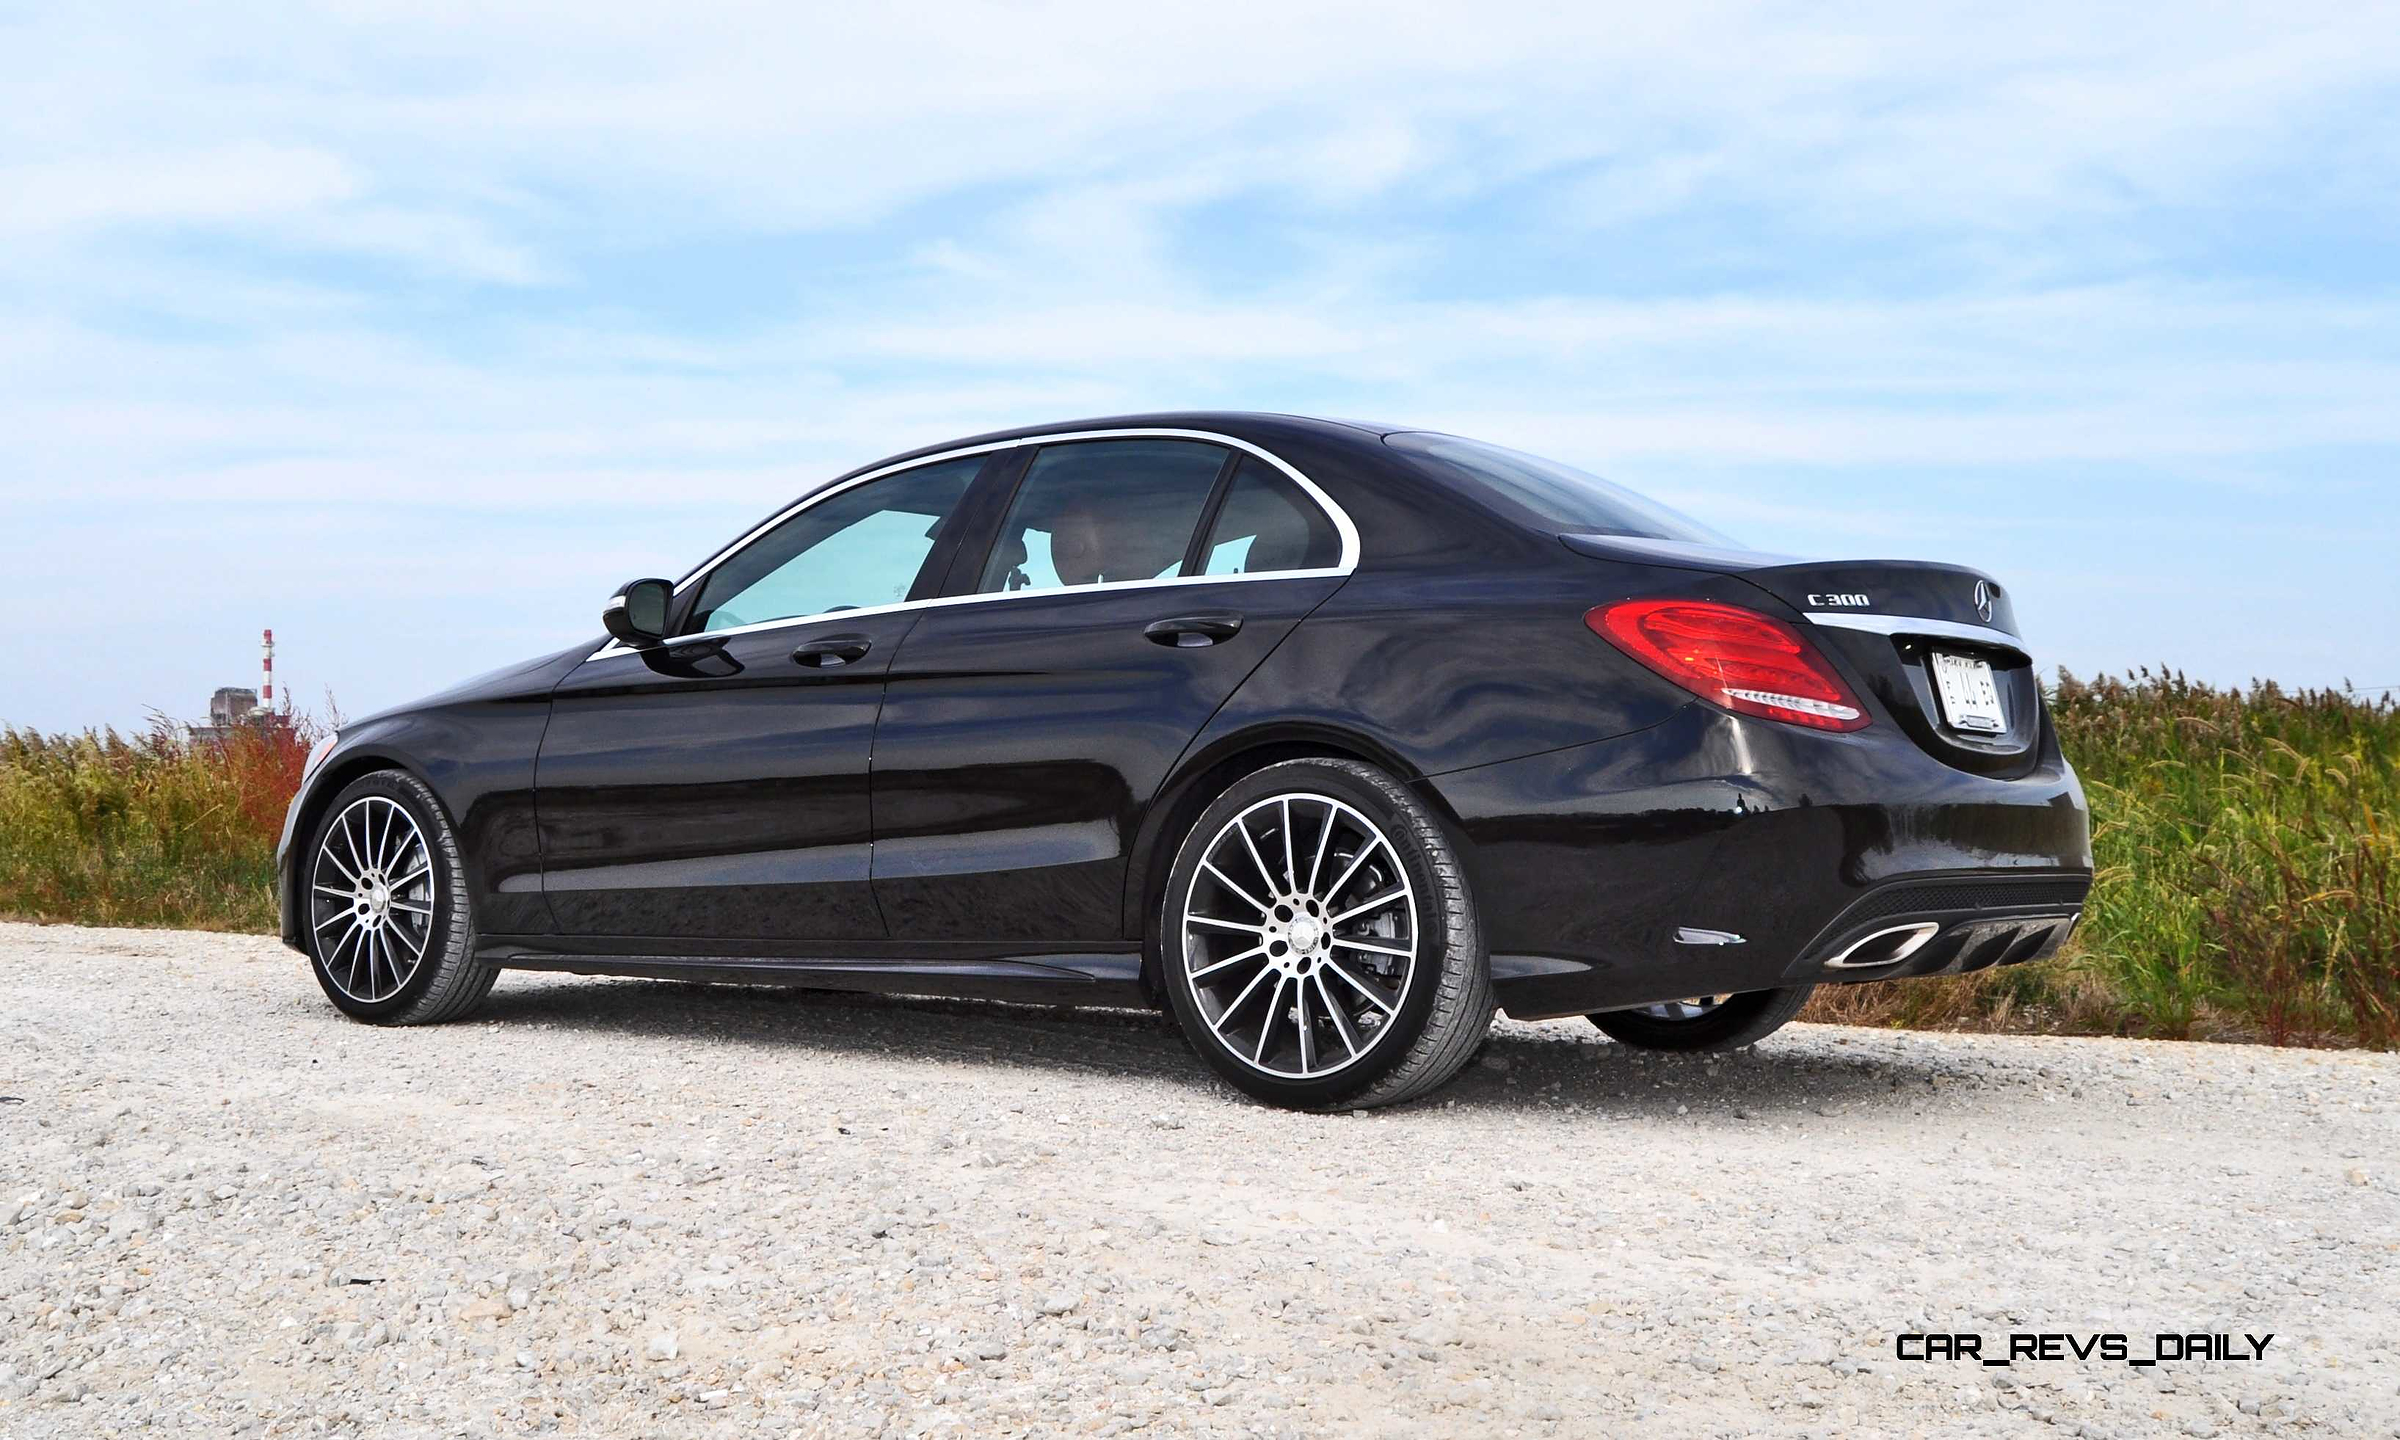 2015 mercedes c300 4 matic review autos post for 2015 mercedes benz c300 4matic